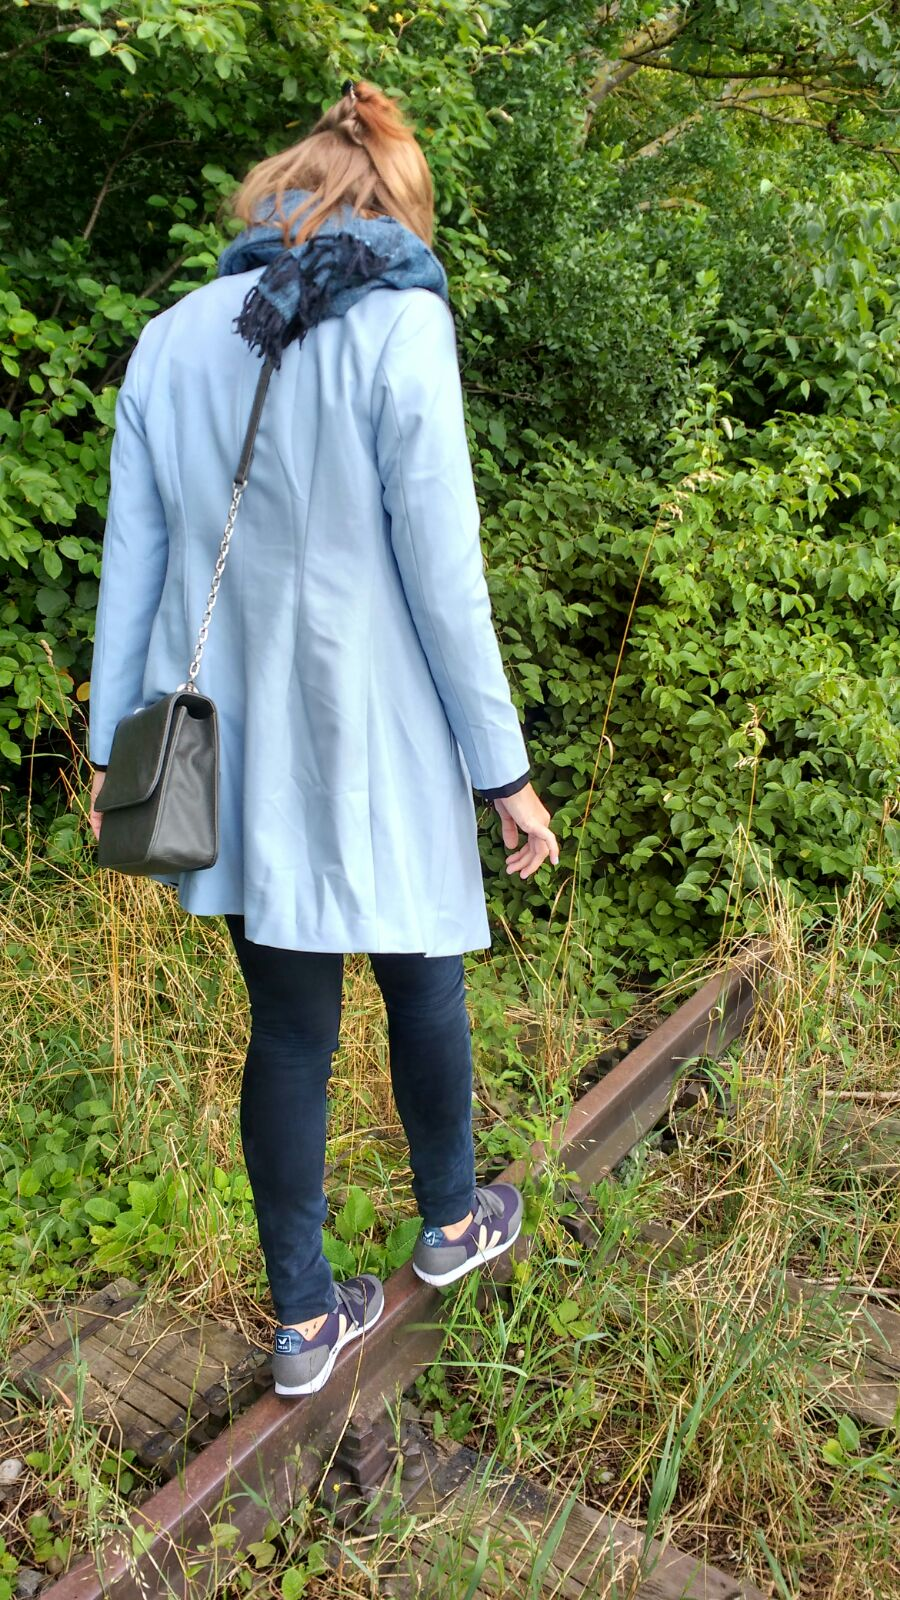 Alltags-Outfit